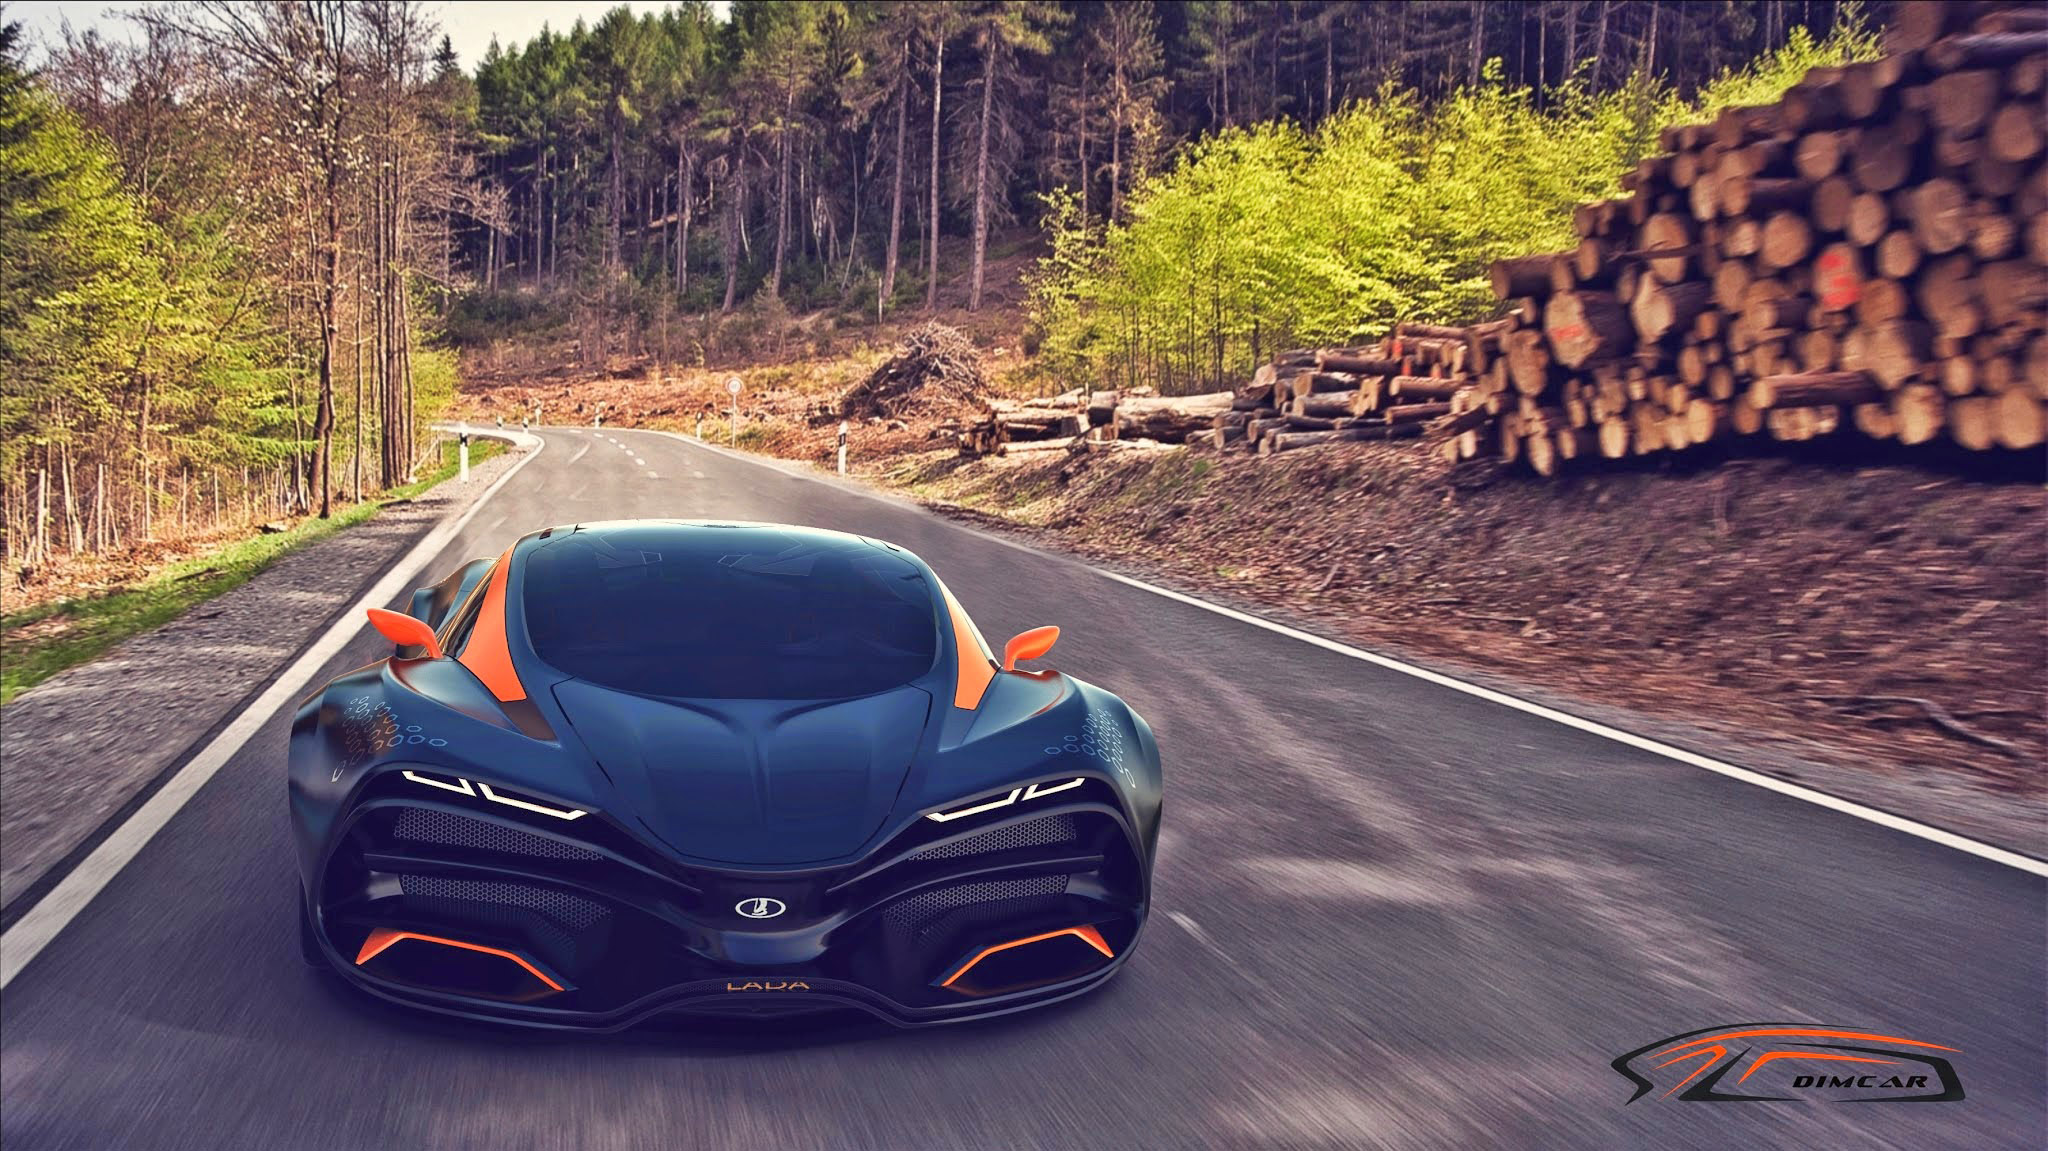 Old Chevy Cars >> Lada Has in Mind a Supercar Concept? [VIDEO]